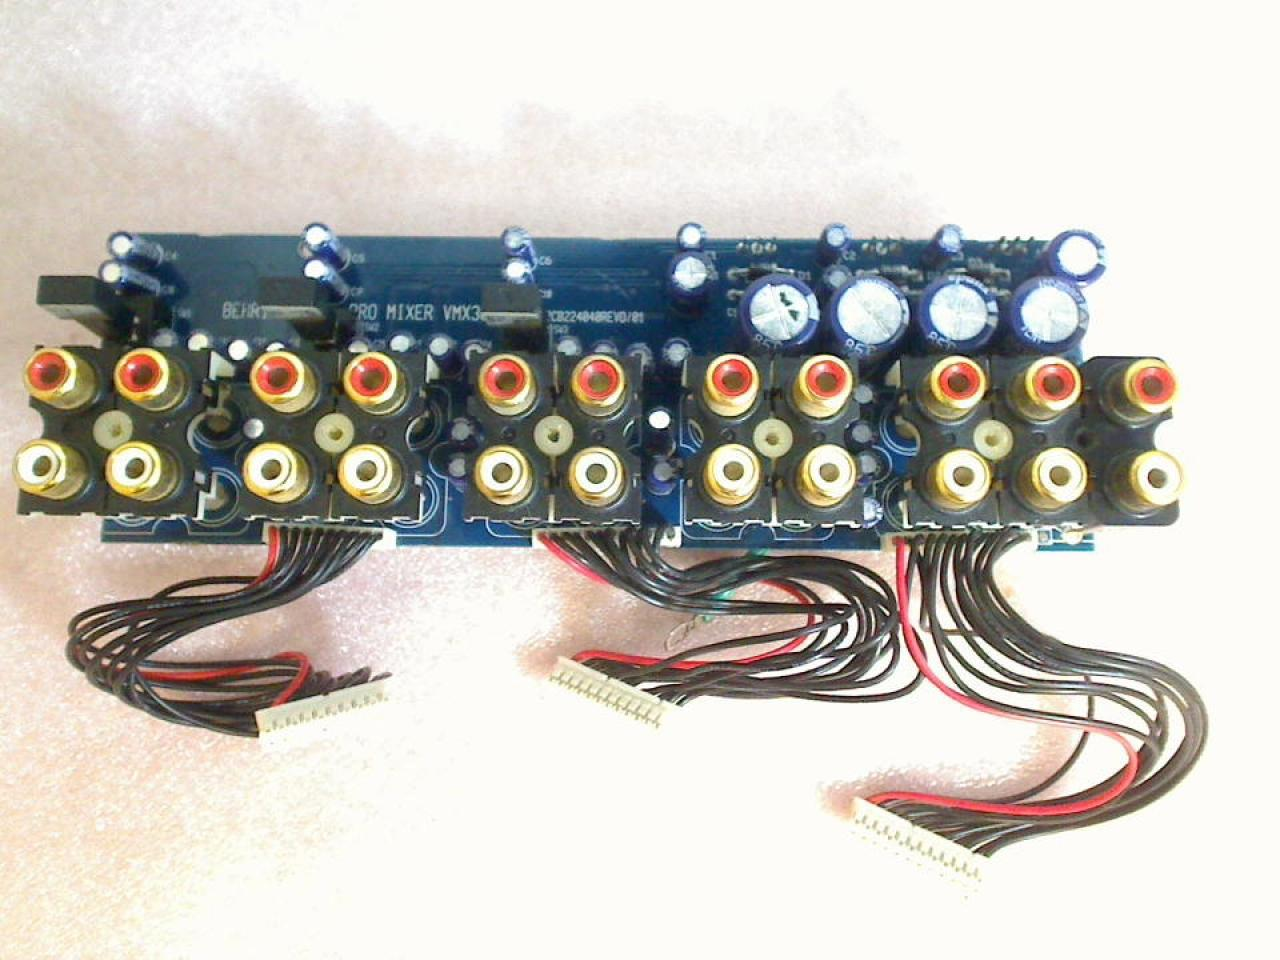 Electronic Board Panel PCB224040REVD/01 Behringer Pro Mixer VMX300